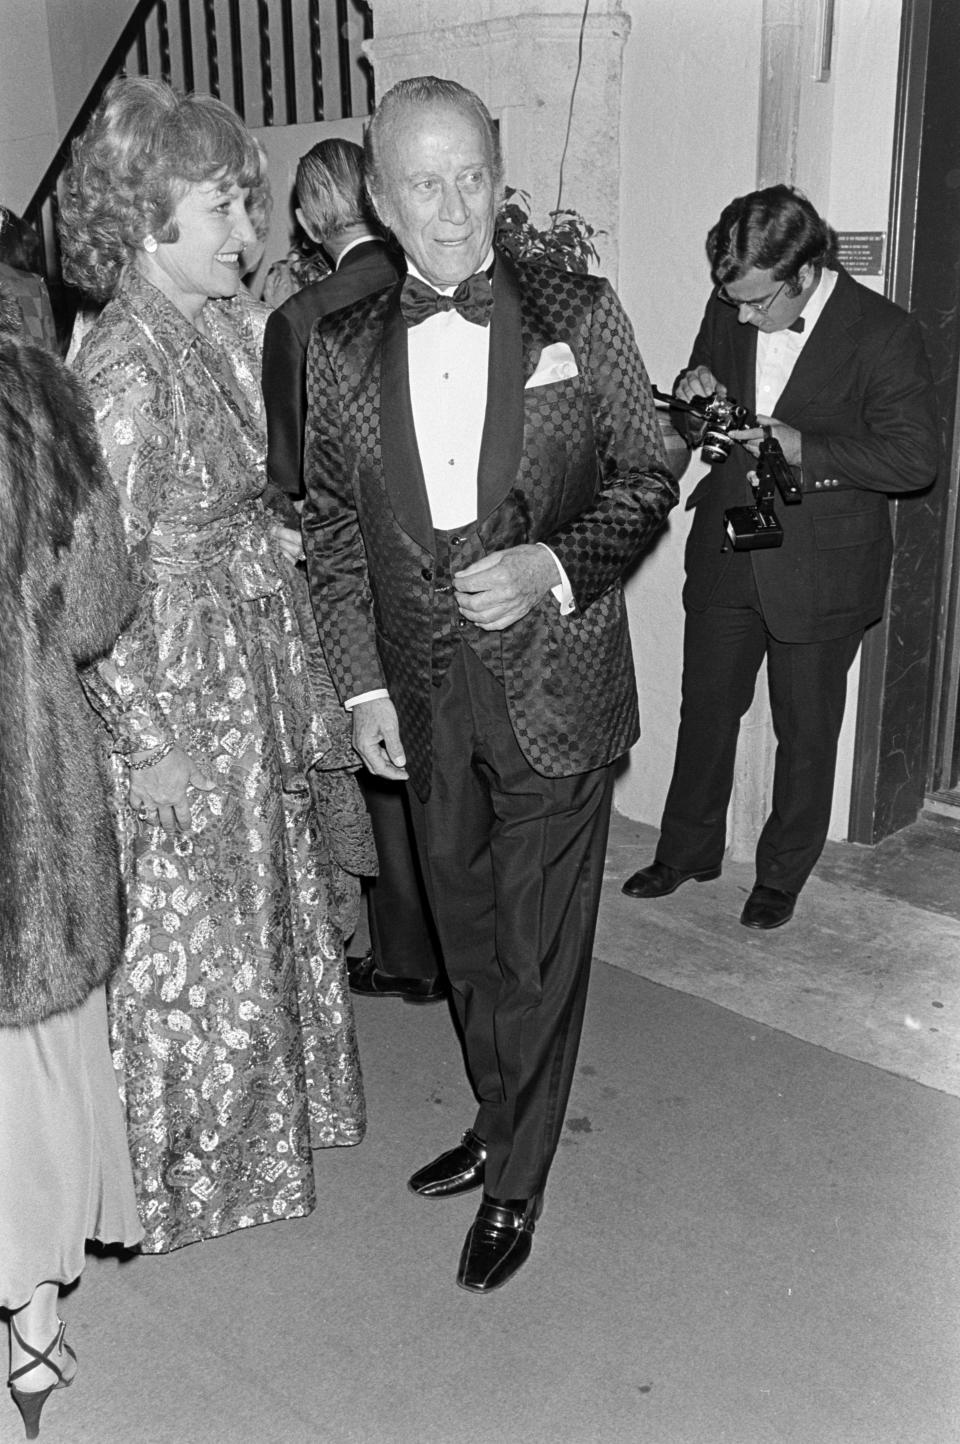 Aldo Gucci in a blue brocade Gucci evening coat greets guest during reception at his Palm Beach, Fla., home on Dec. 2, 1979. - Credit: WWD